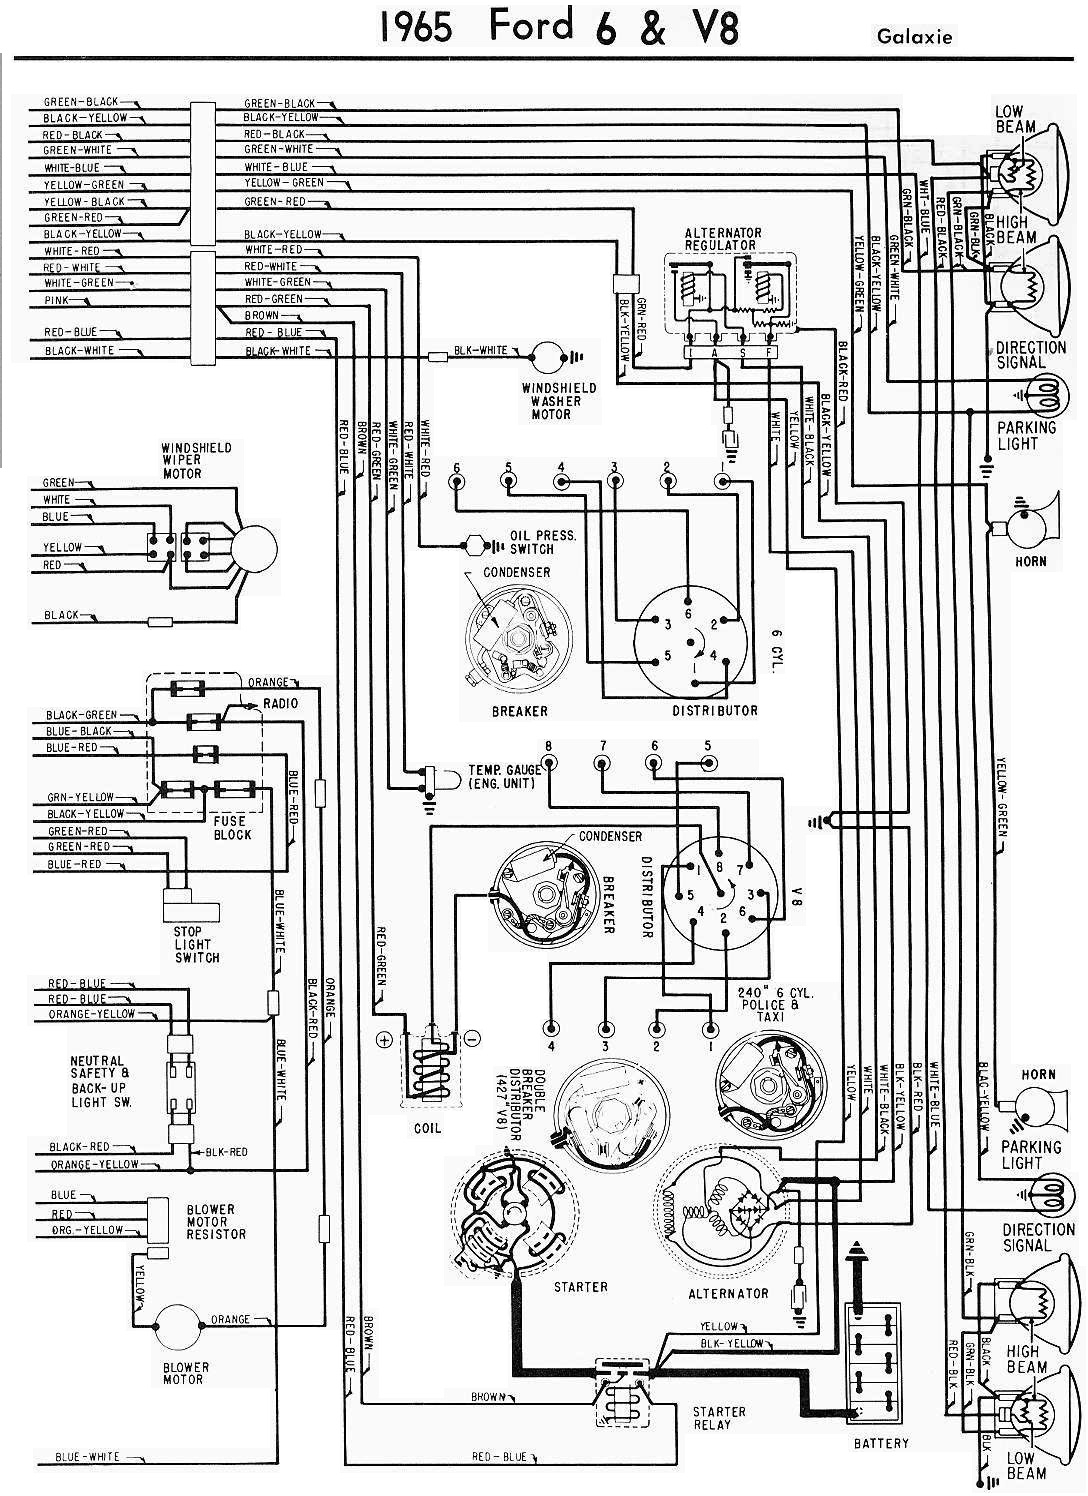 Ford Falcon Door Wagon Six Engine in addition Windows Wiring Diagram For Ford Thunderbird additionally Ford Galaxie  plete Electrical Wiring Diagram Part in addition C C together with Wiring Diagram For Ford Galaxie. on 1963 ford f100 wiring diagram